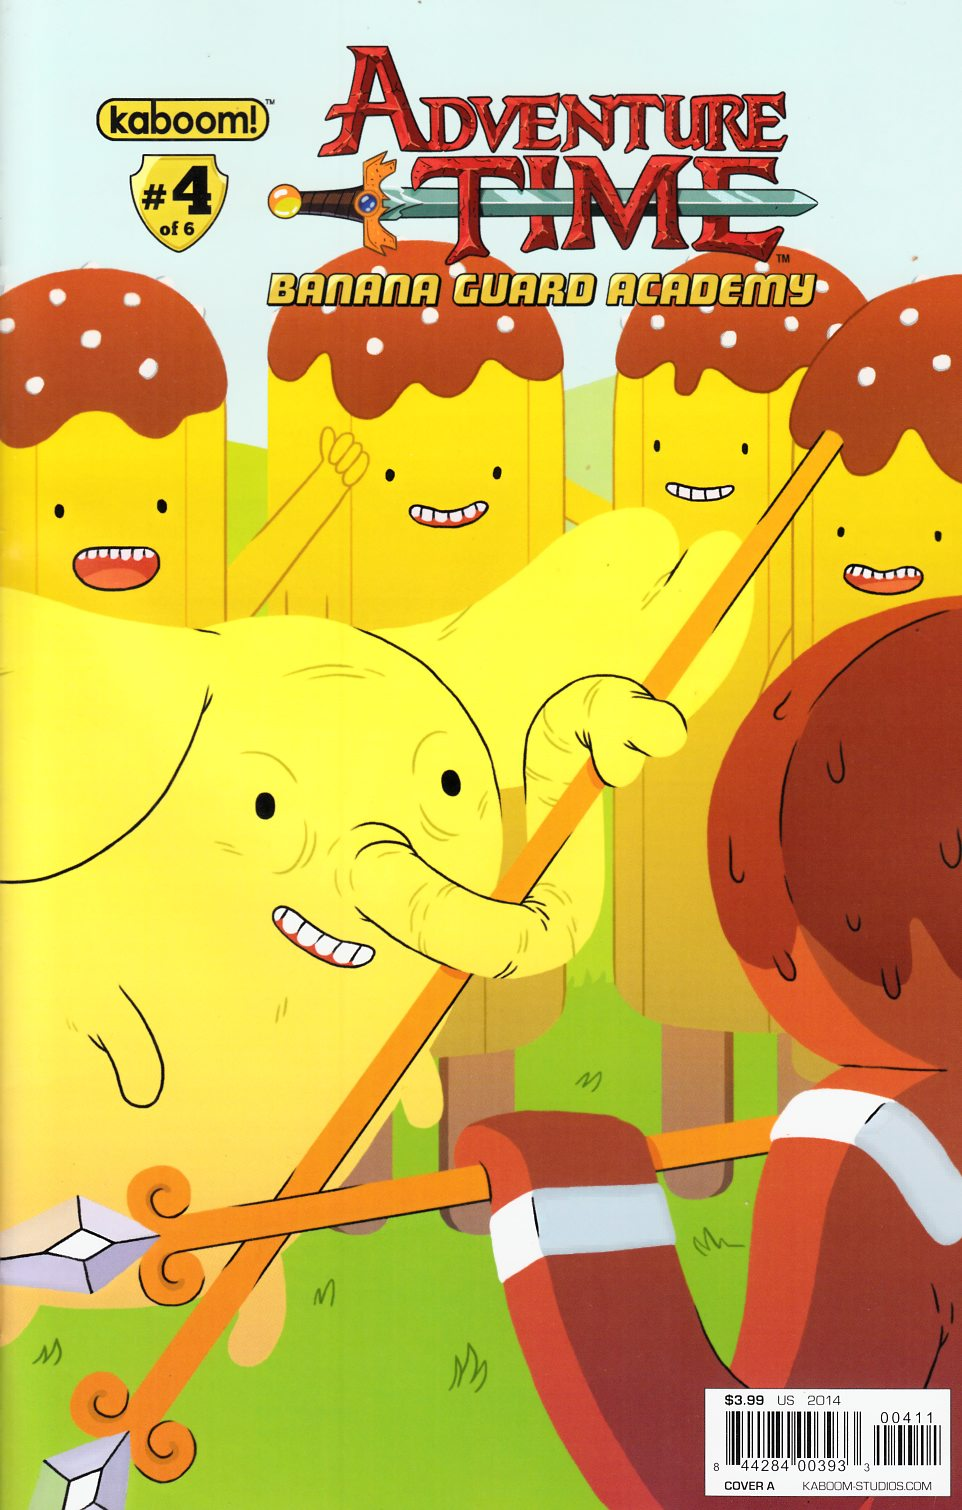 Adventure Time Banana Guard Academy #4 Cover A Fleck [Kaboom! Comic]